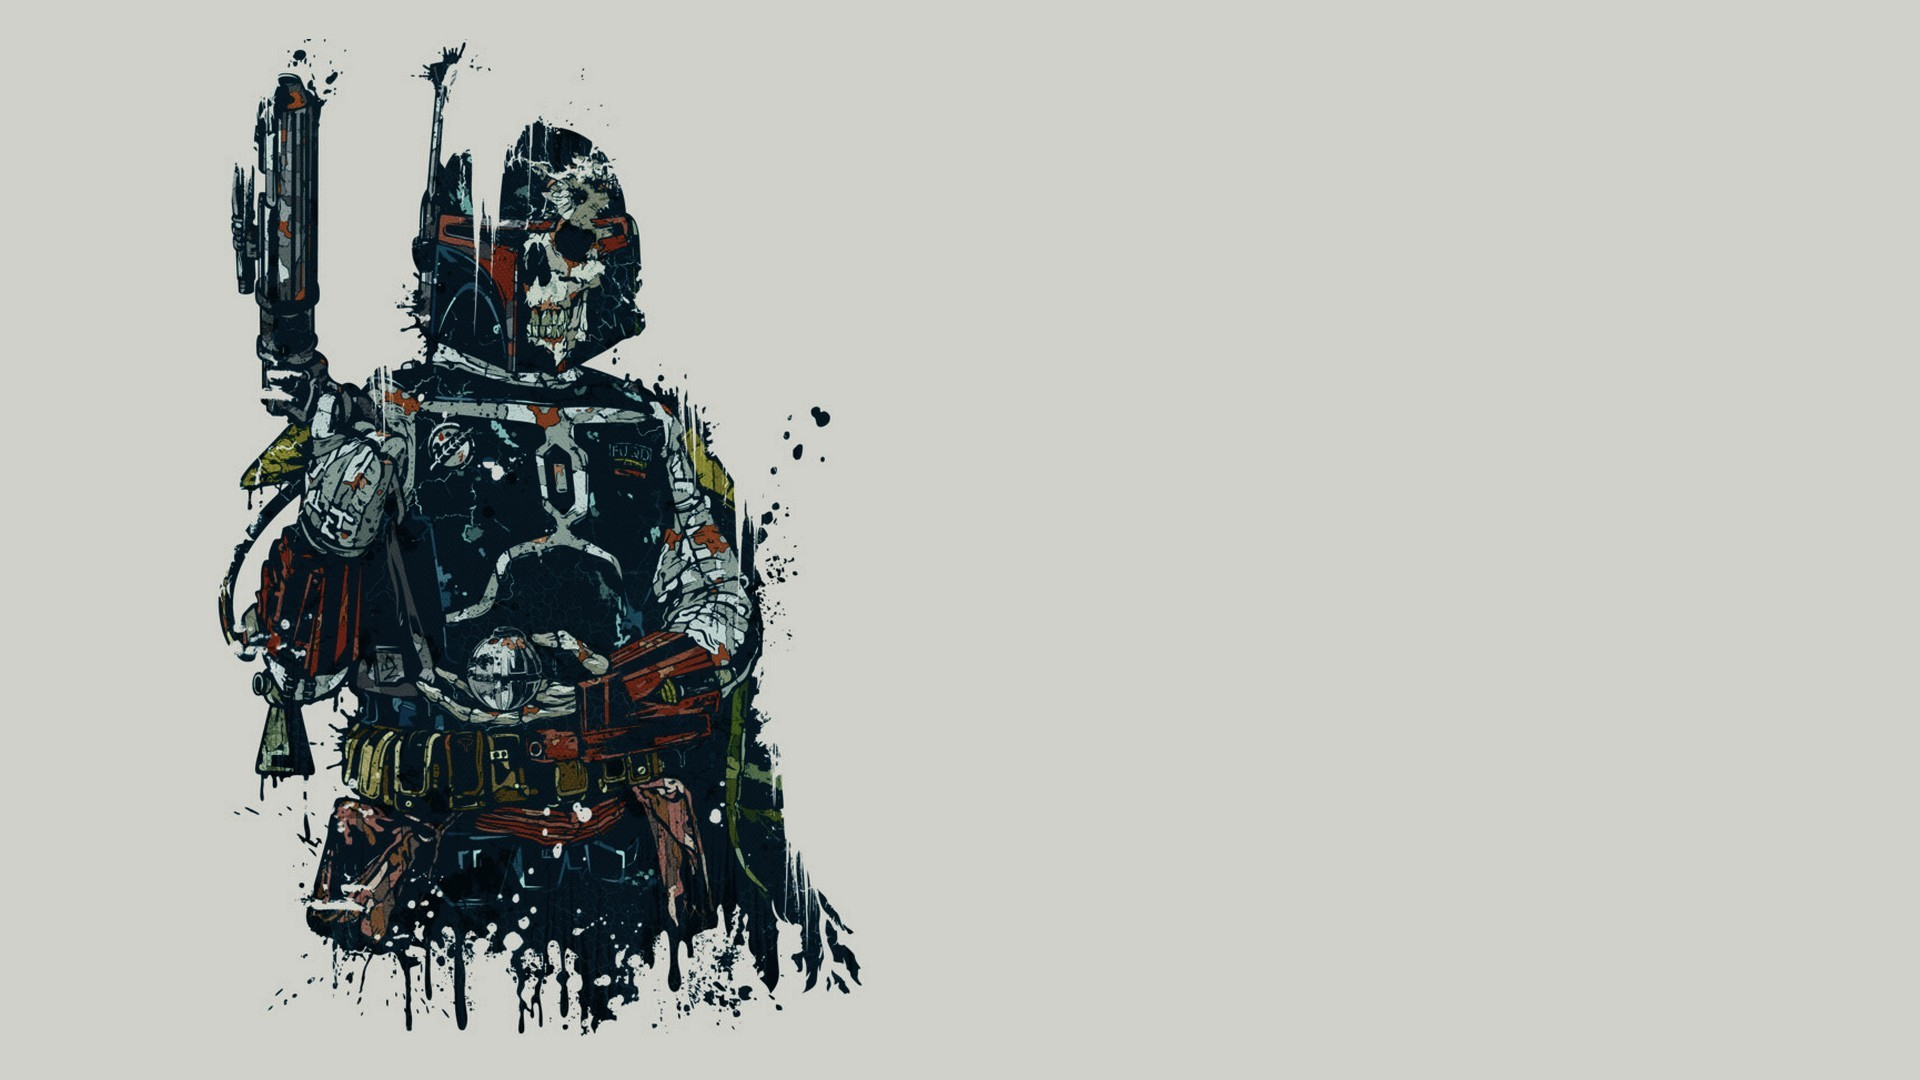 Darth Vader drawing wallpaper 17390 1920x1080